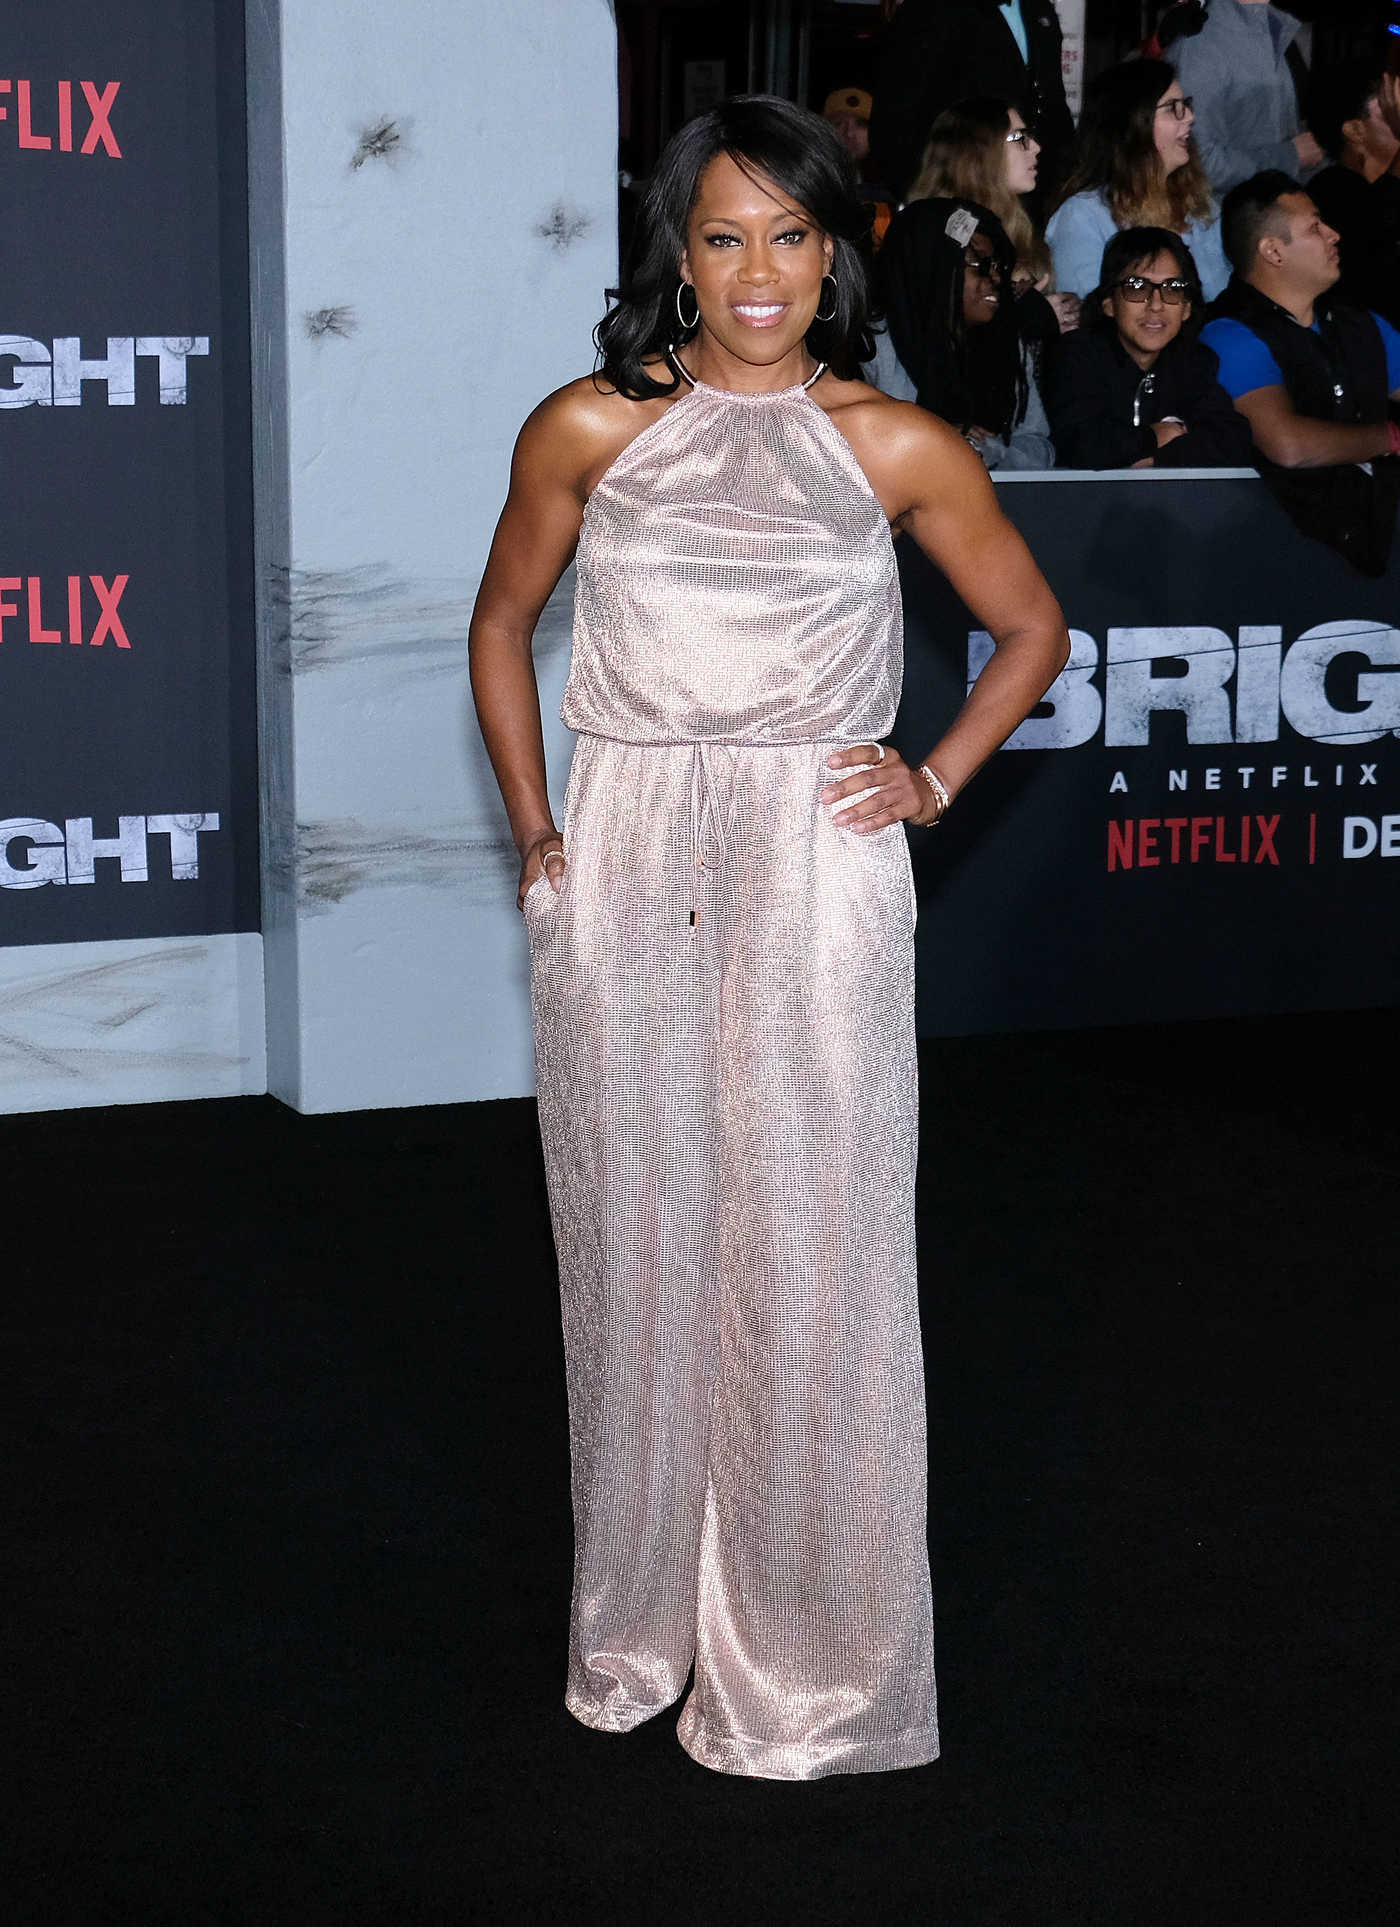 Regina King at the Bright Los Angeles Premiere at the Regency Village Theatre in Westwood 12/13/2017